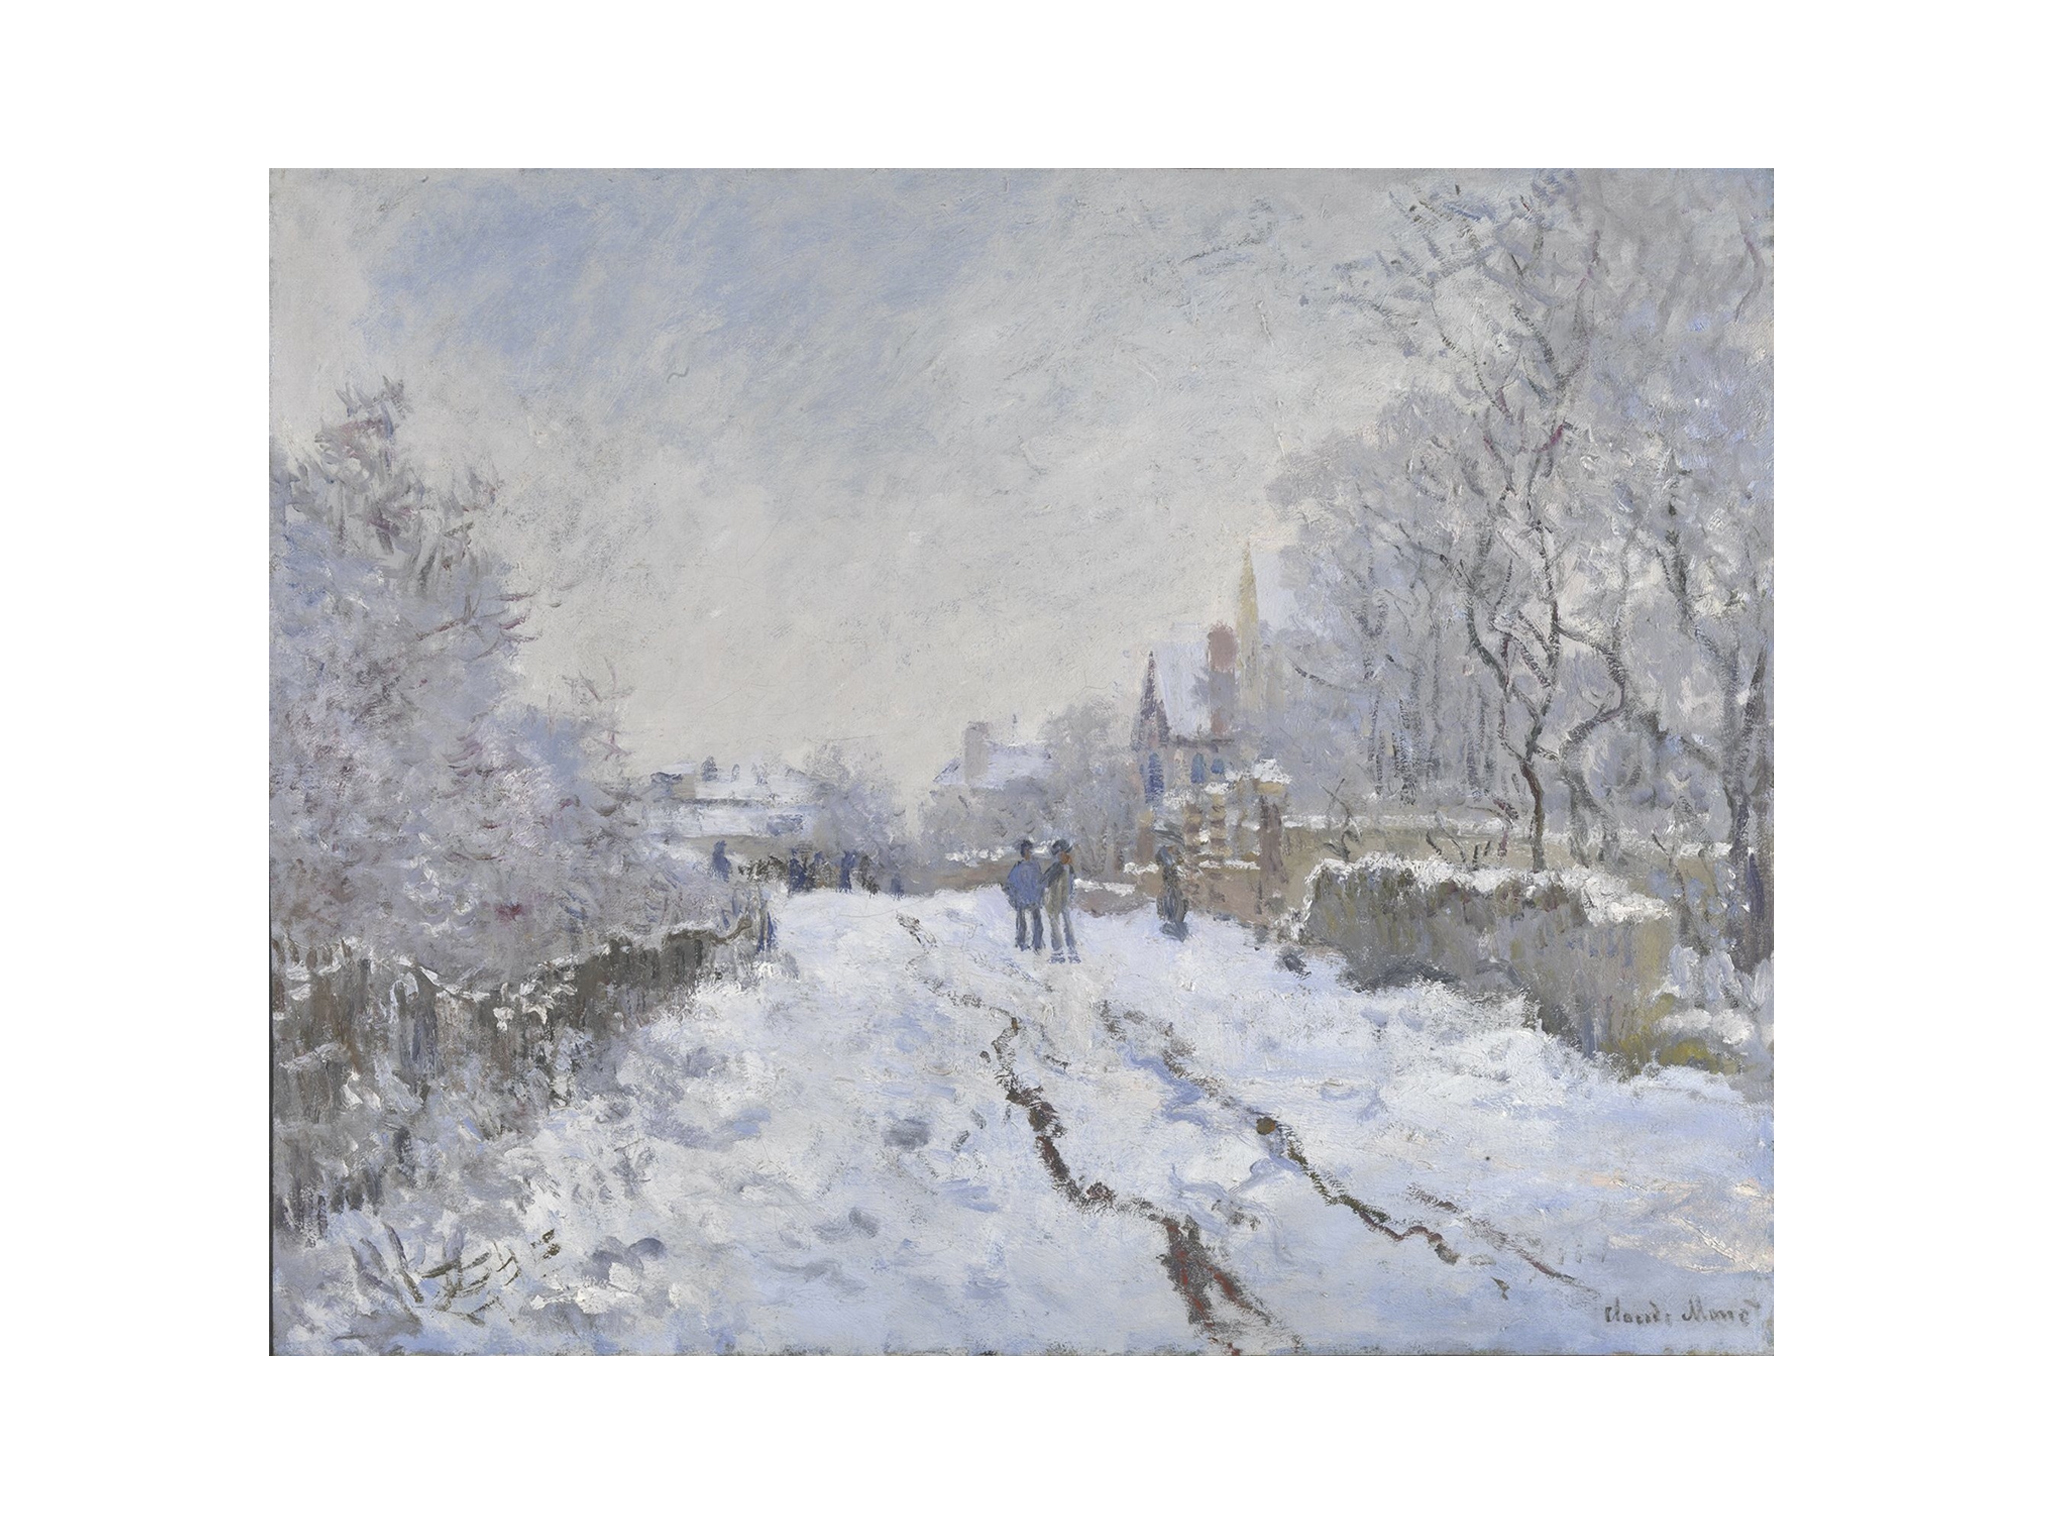 Snowy Paintings In London Art In London Time Out London